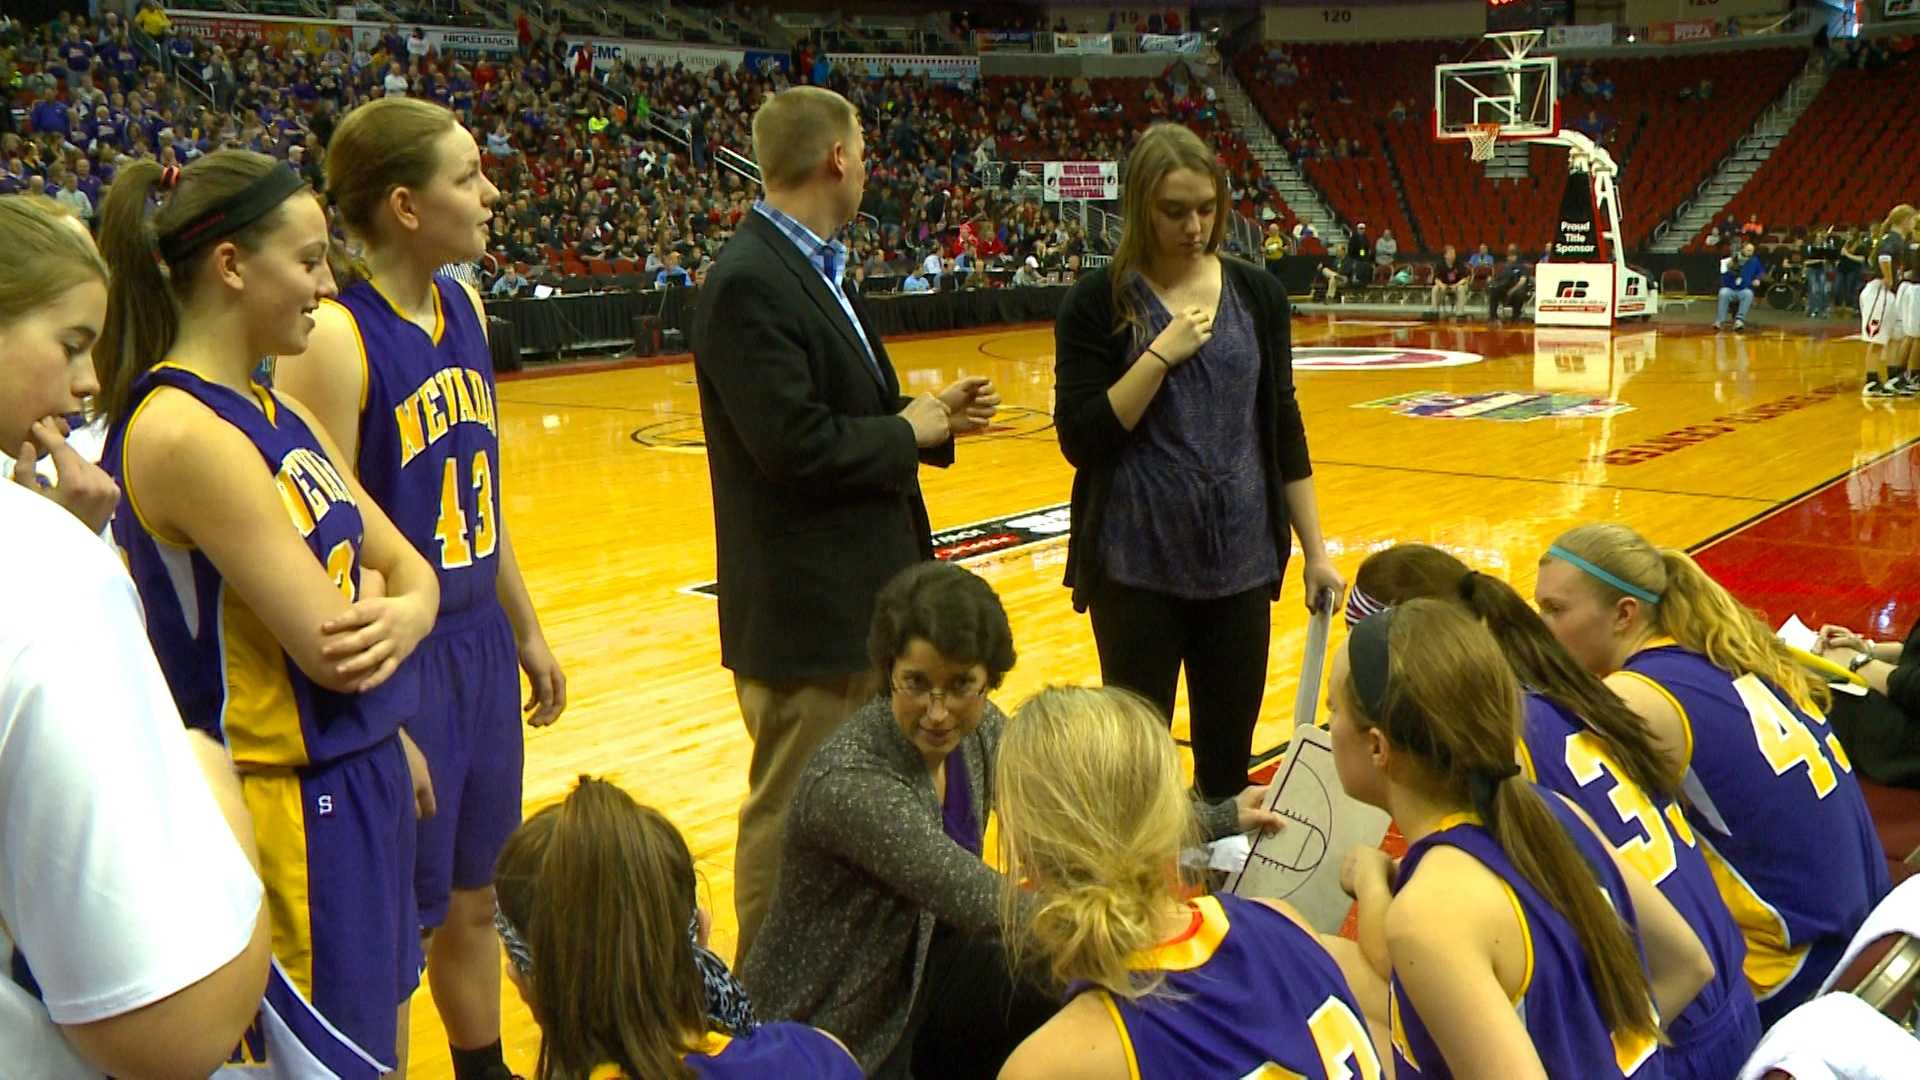 Nevada will play for it's first state championship at the girls' state basketball tournament since 1920.